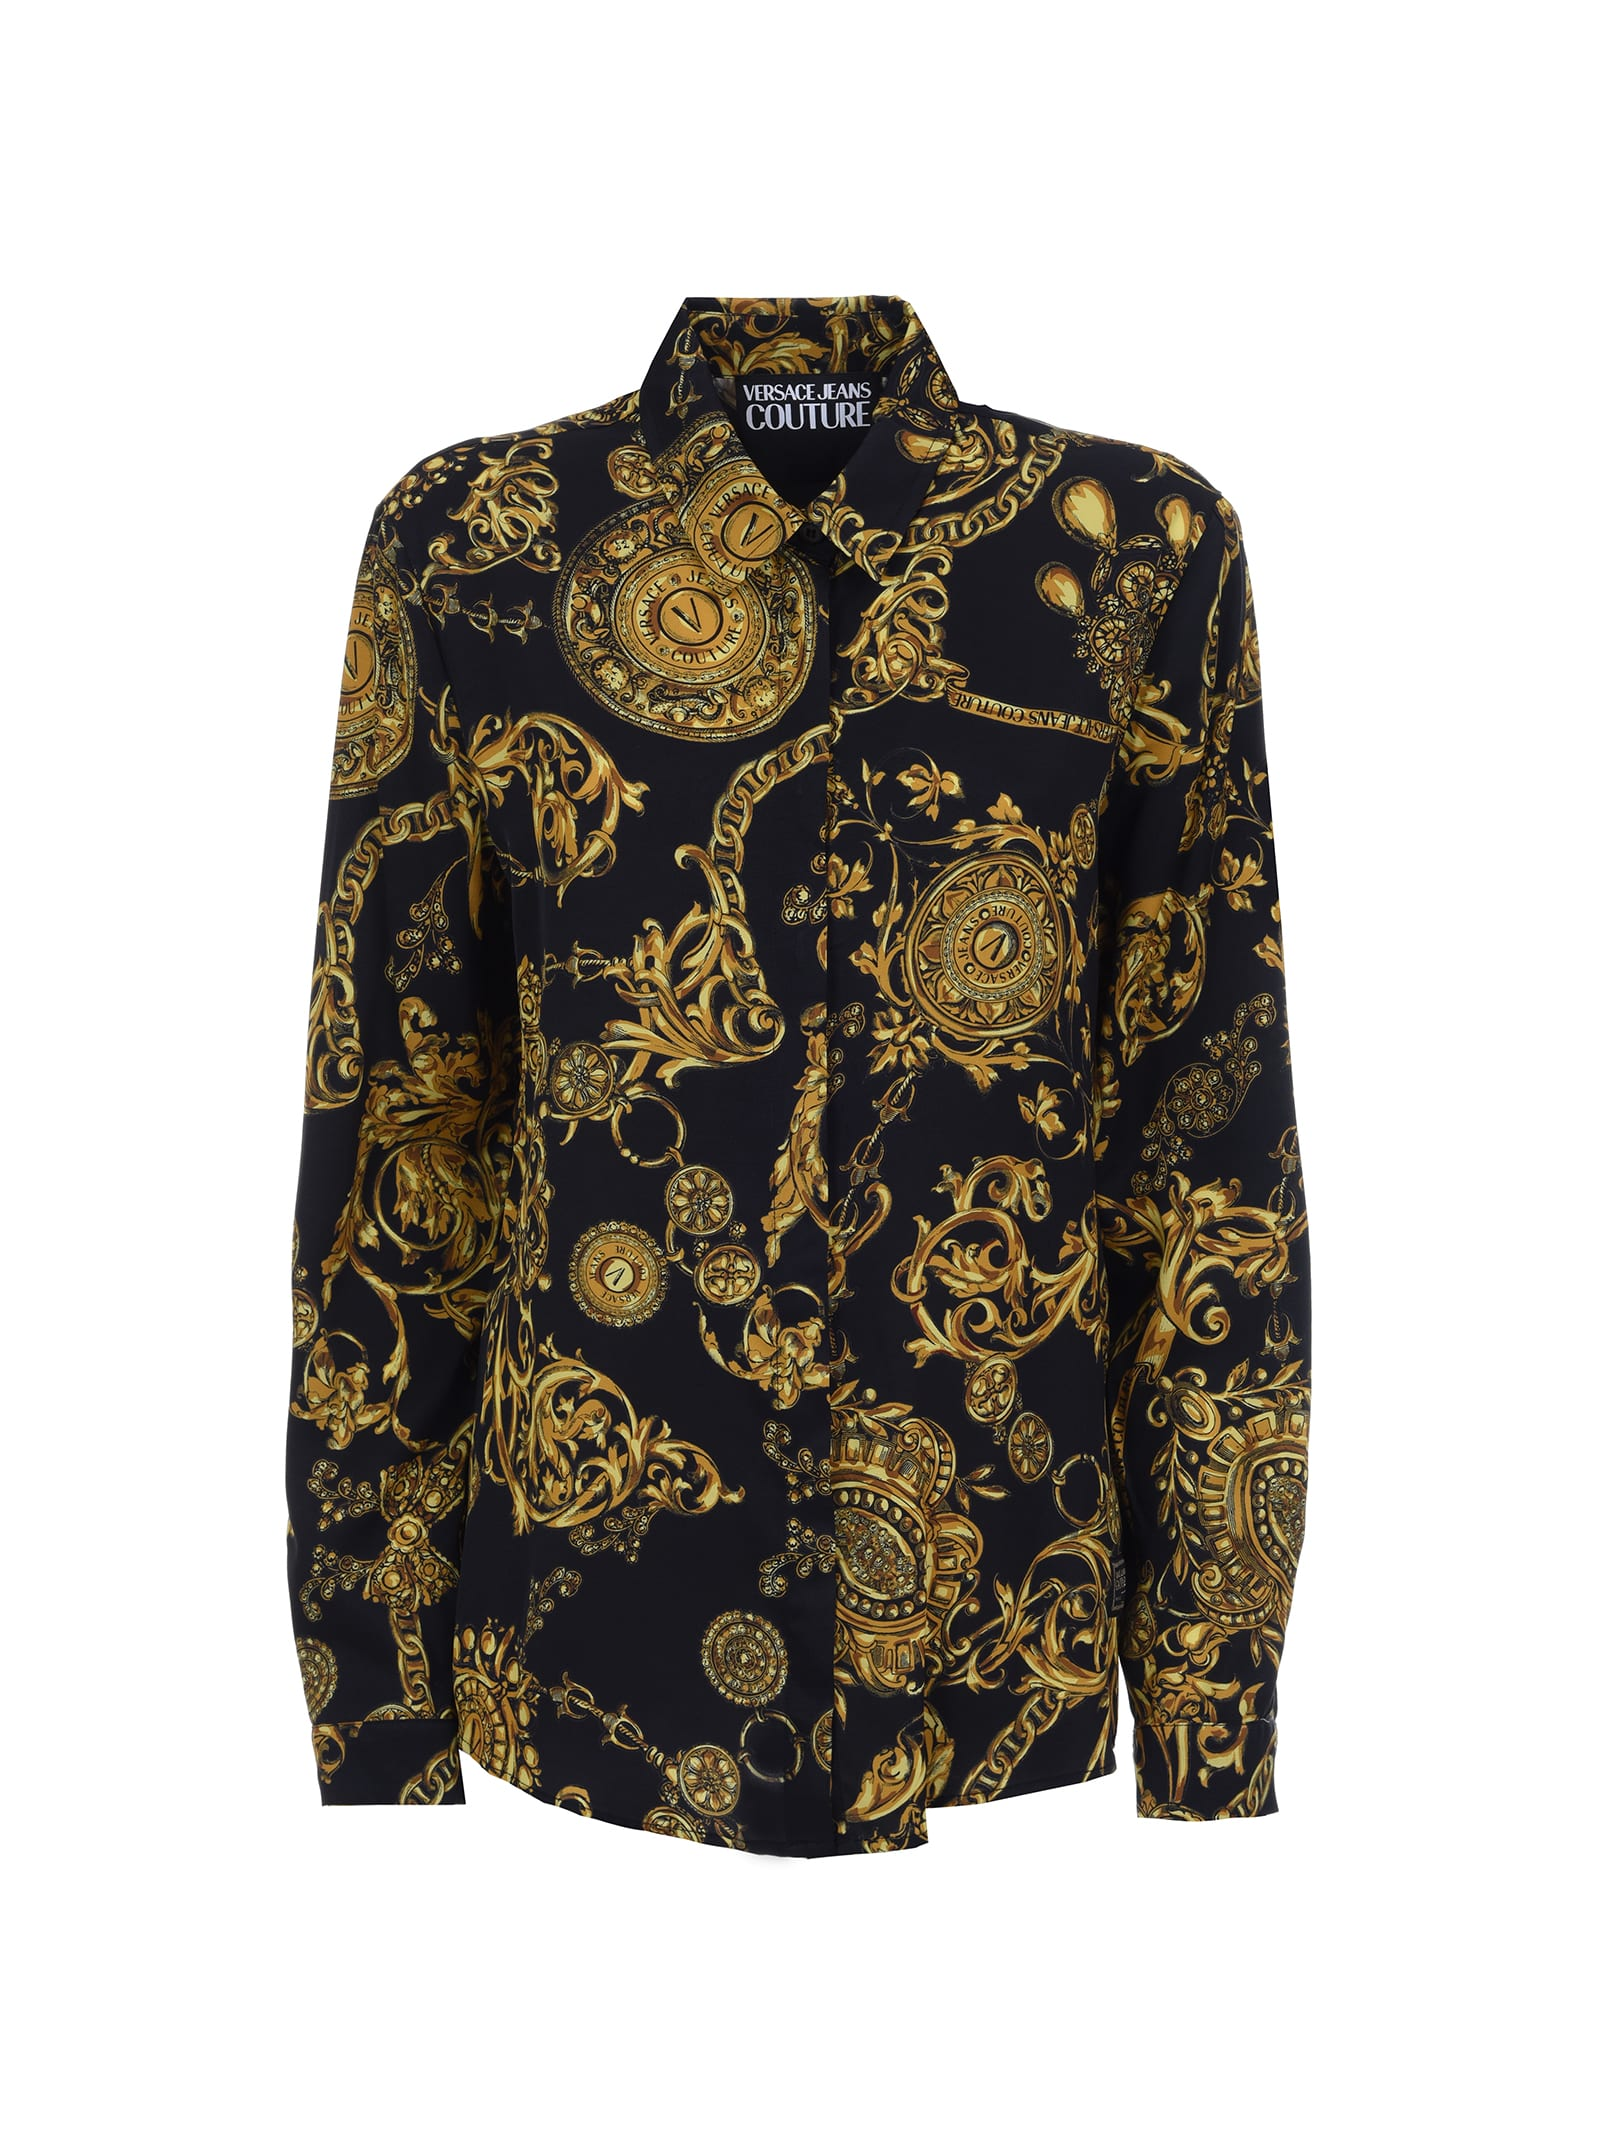 Versace Jeans Couture Baroque Print Twill Shirt In 899 + 948